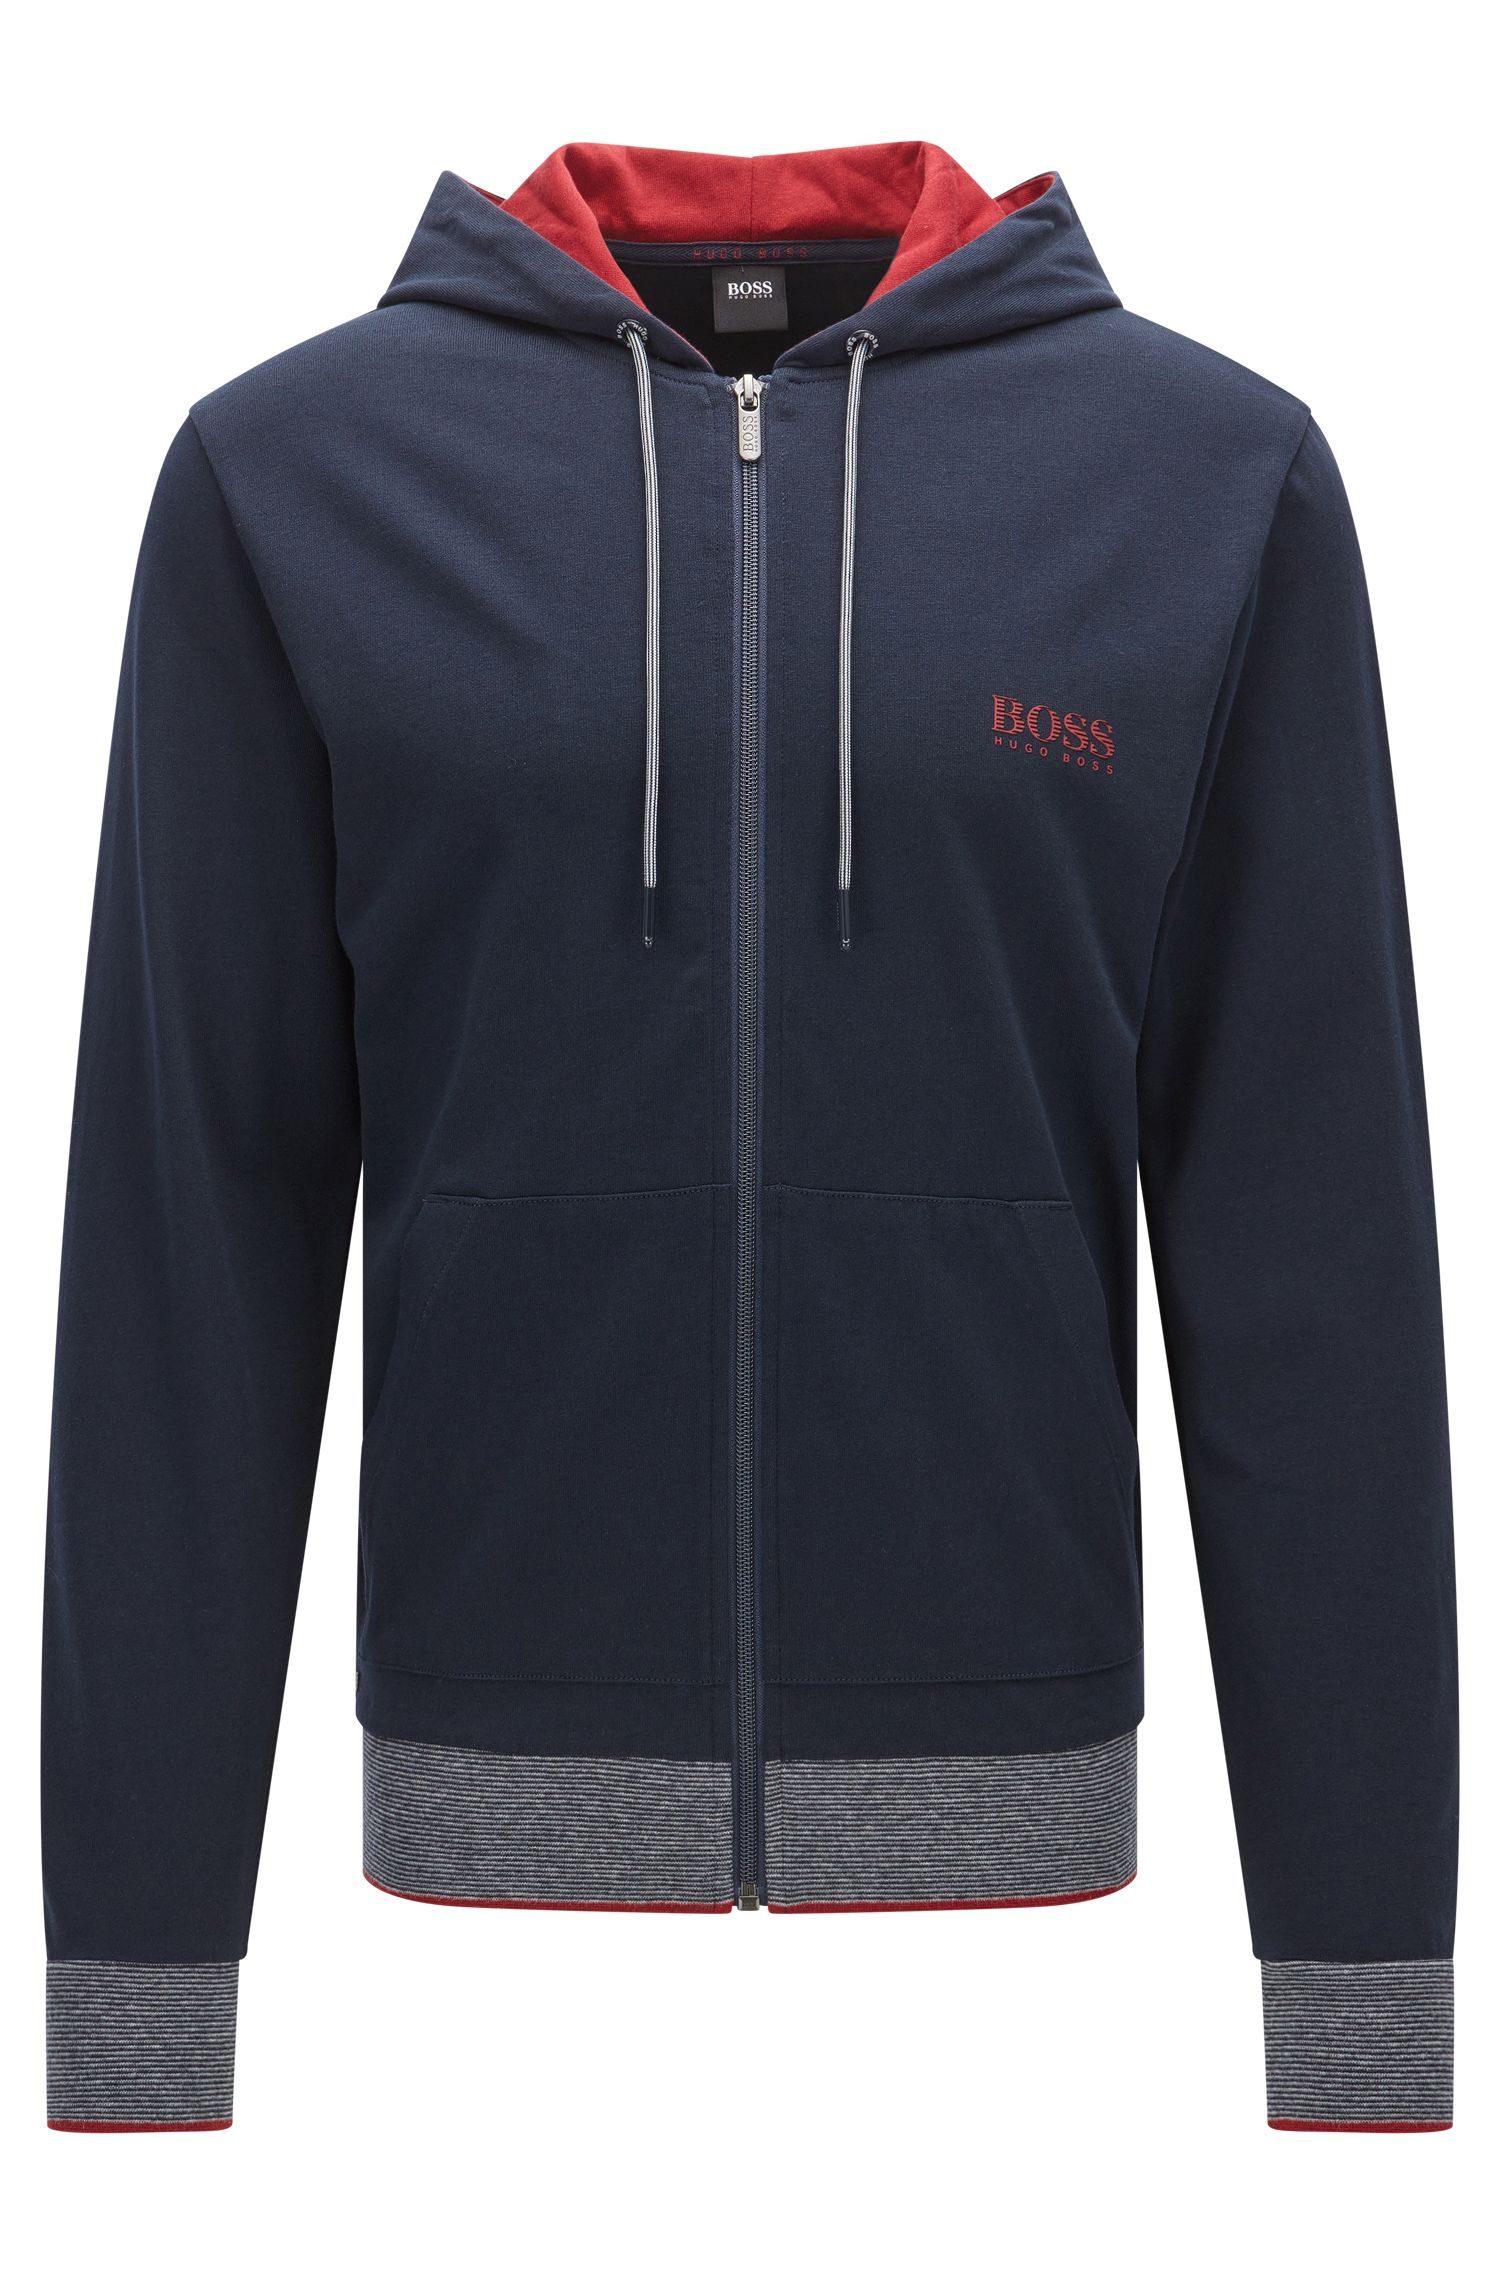 Regular-fit zip-through hooded sweatshirt in cotton jersey